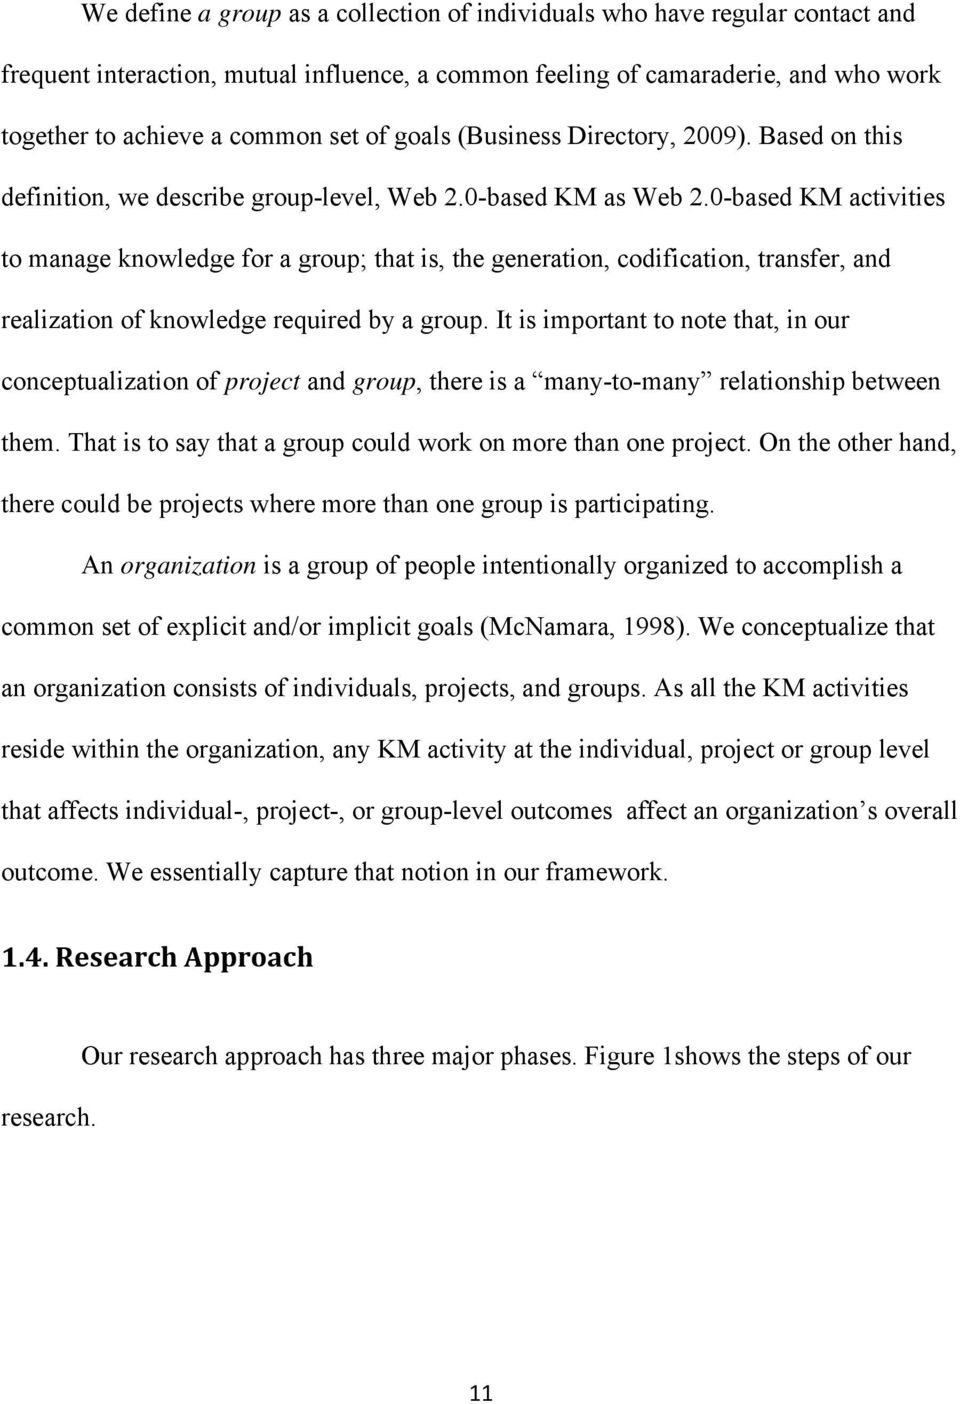 0-based KM activities to manage knowledge for a group; that is, the generation, codification, transfer, and realization of knowledge required by a group.